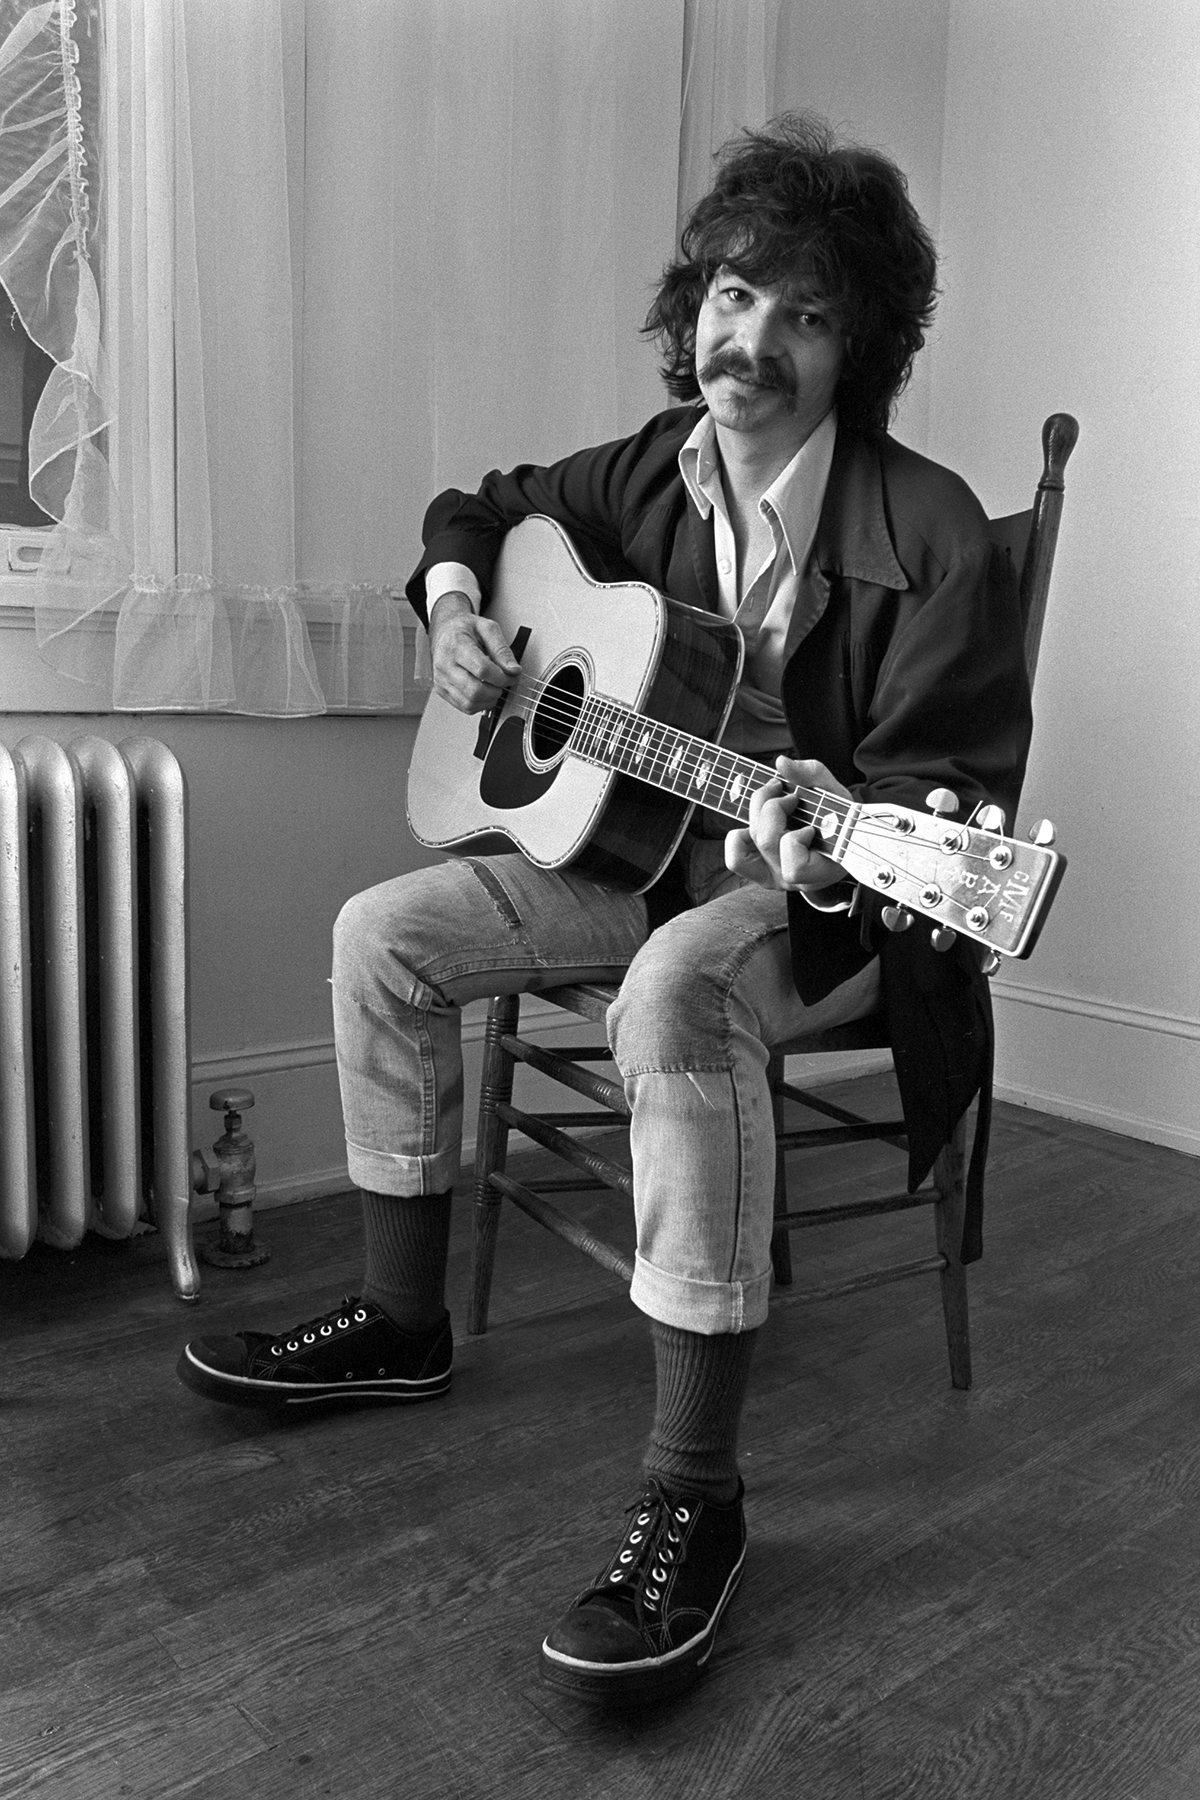 John Prine at an apartment on Briarcliff Road during John Prine on campus of Georgia State College - November 12, 1975 at Georgia State College in Atlanta, Georgia, United States. (Photo by Tom Hill/WireImage)